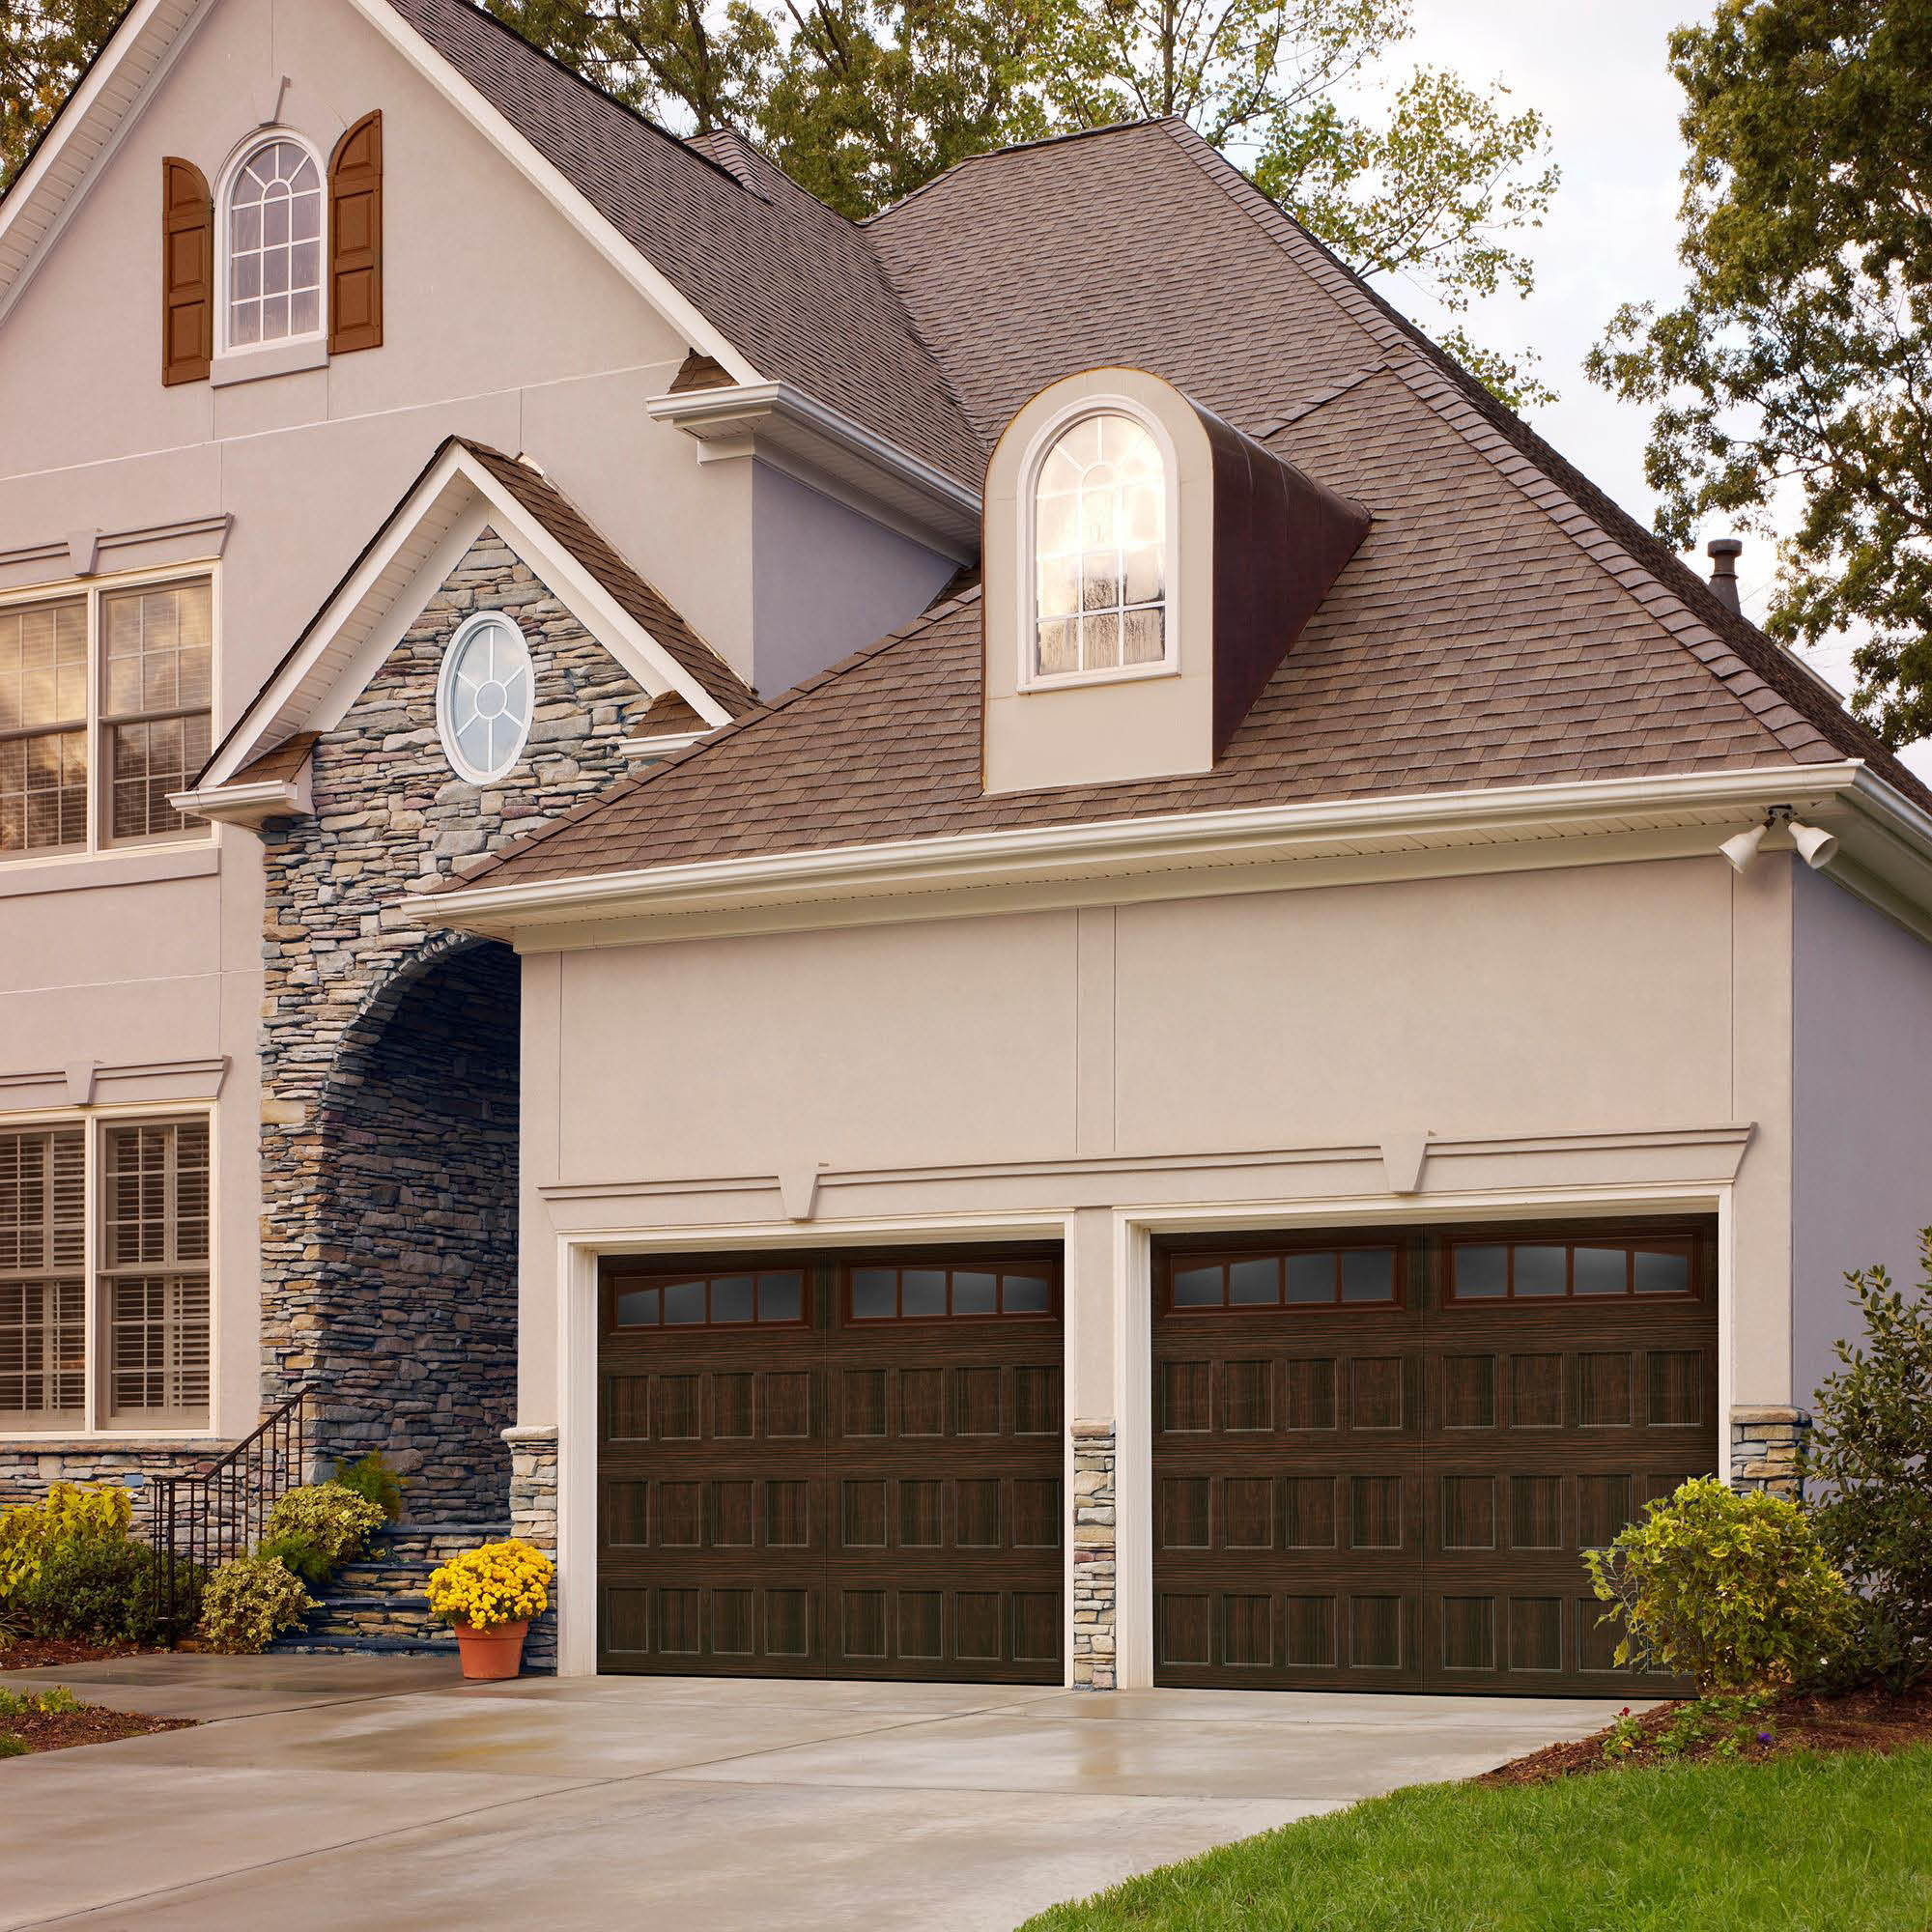 austin door affordable safety last maintenance of basic magnificent benefits and with precision layout using garage efficiency for doors